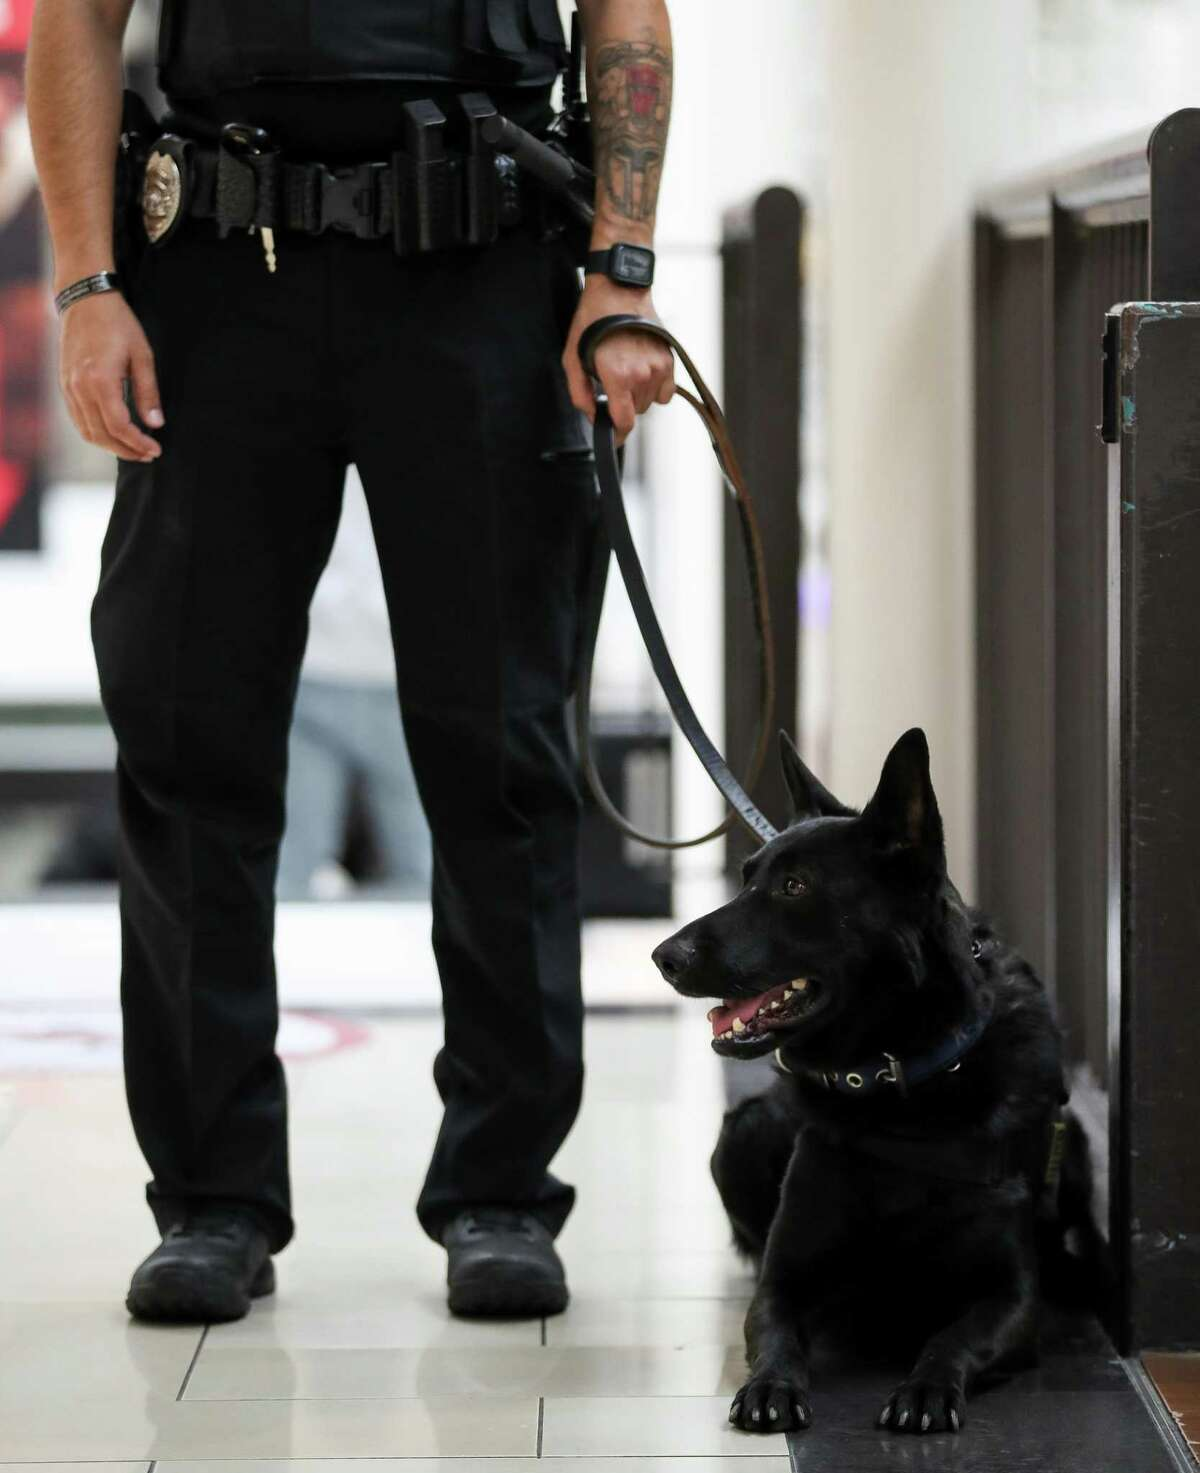 Security officer Brandon Brinkman and his K-9 partner Makimake their rounds inside Deerbrook Mall on Saturday, April 17, 2021, in Humble, Texas. Makiis a firearm-sniffing dog, he alerts Brinkman if a visitor has any gunpowder residue on their person. The measure is an effort to stave off shootings and make people feel safe coming to shop.